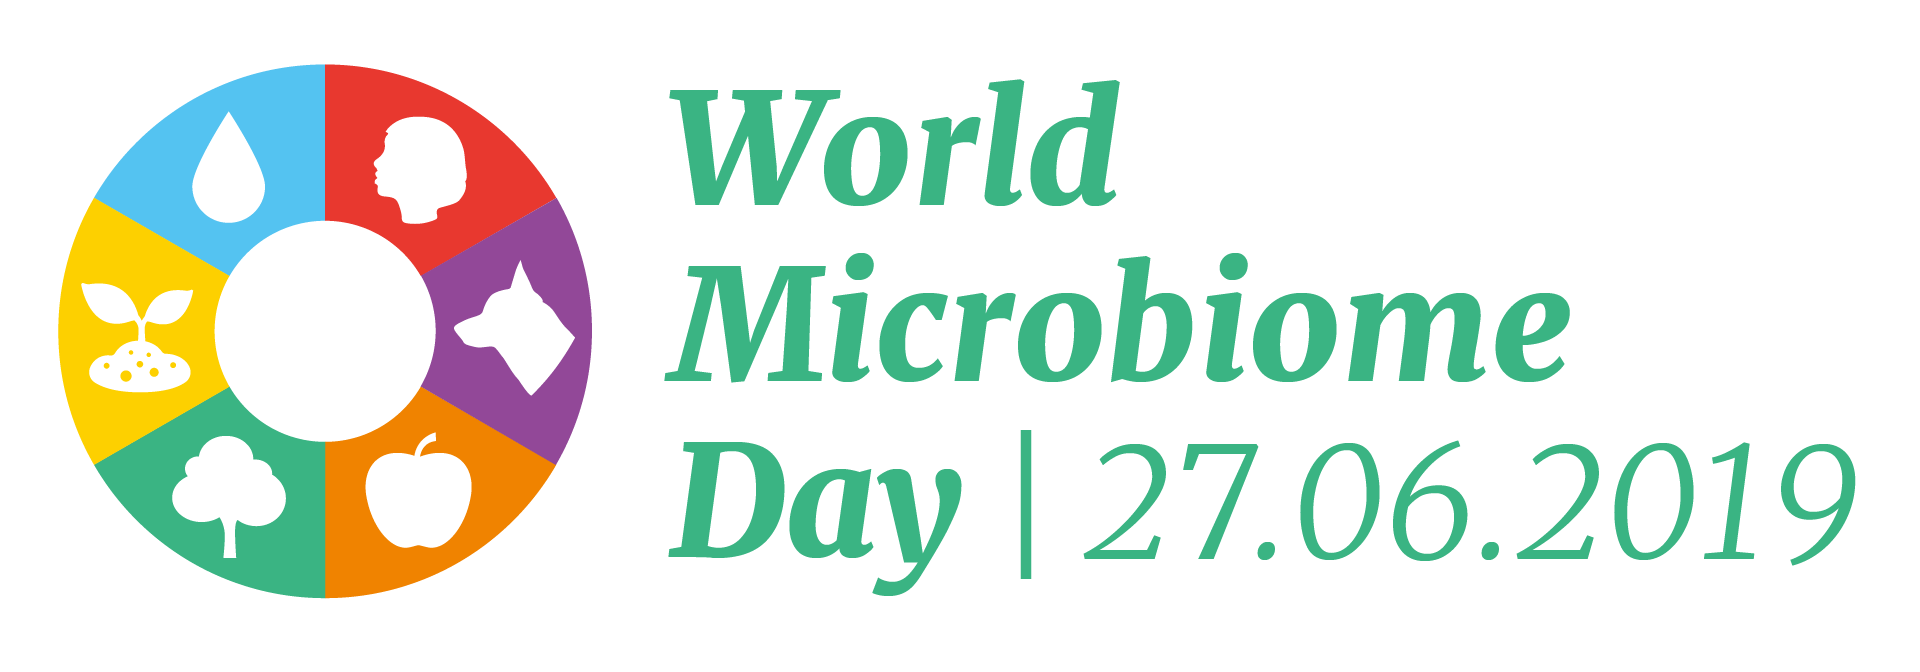 World Microbiome Day, 27th June 2019